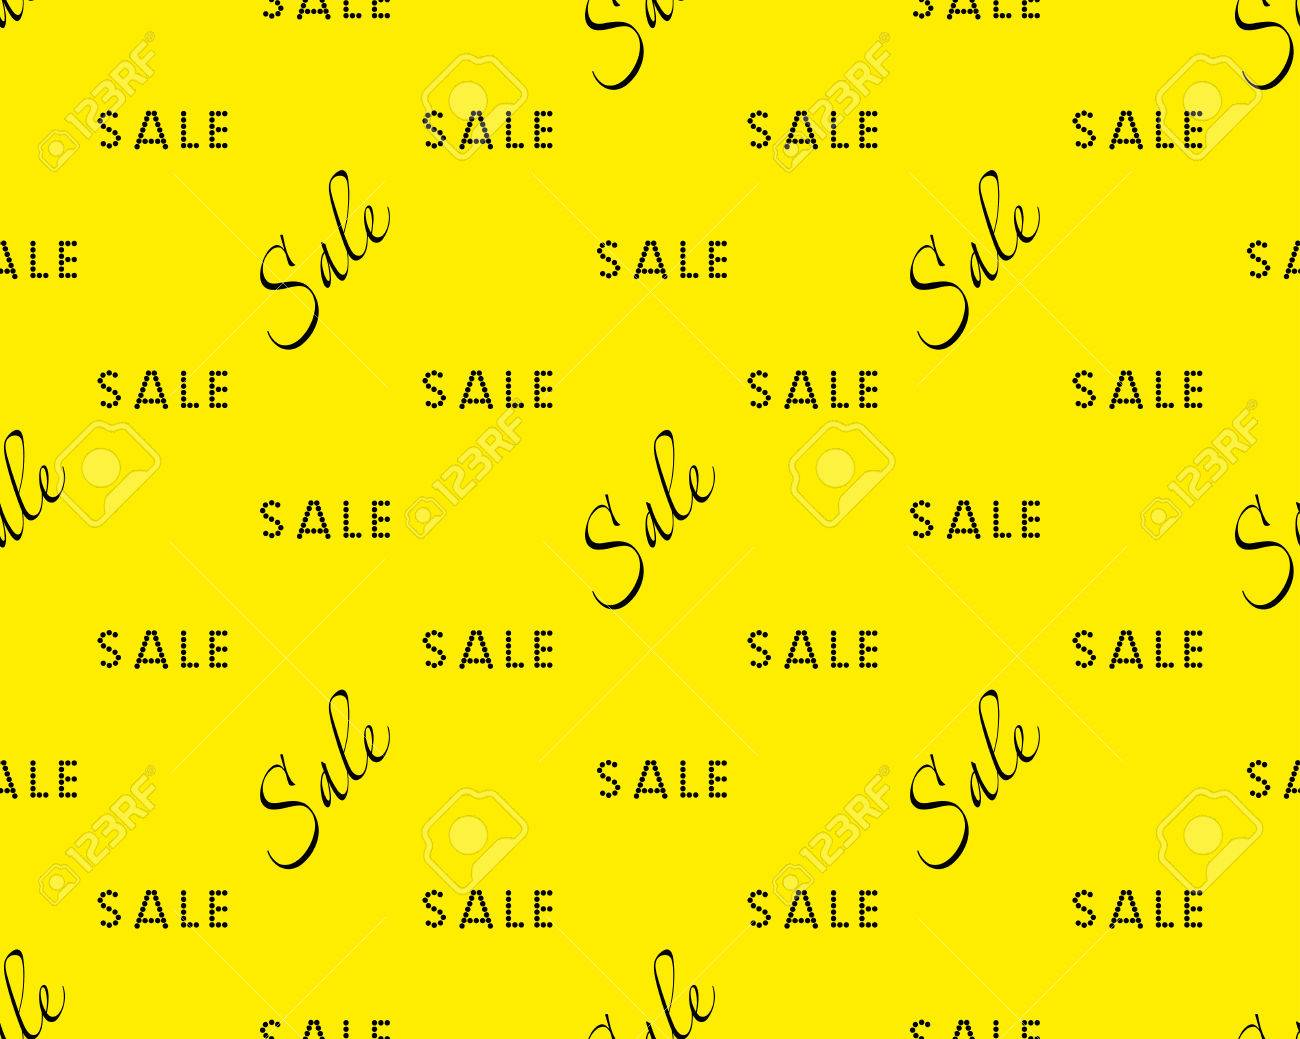 Sale Simple Background Black On Yellow Color Sale Background